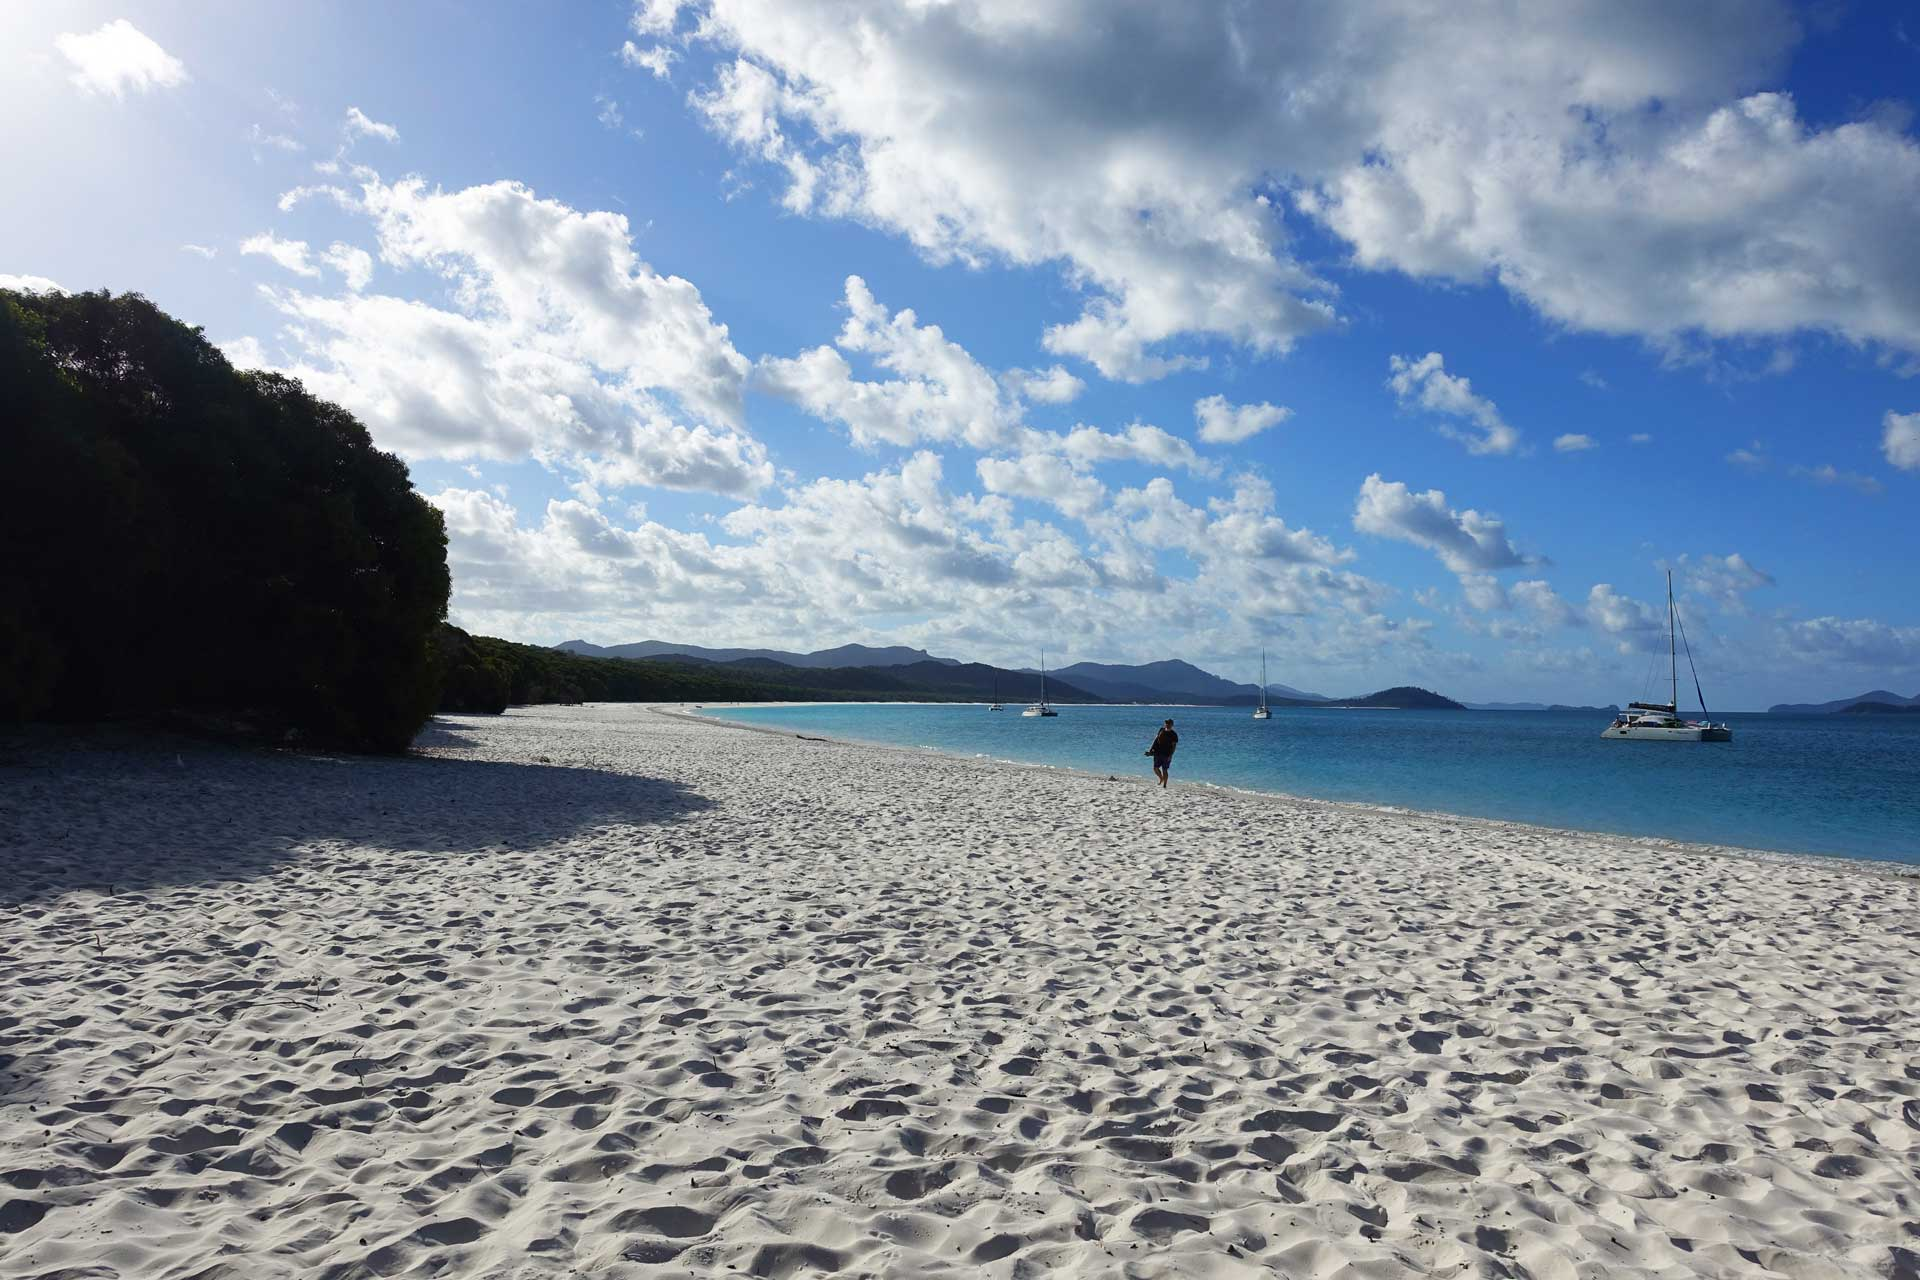 Sunkissed at Whitehaven Beach – The Best Beach in Australia